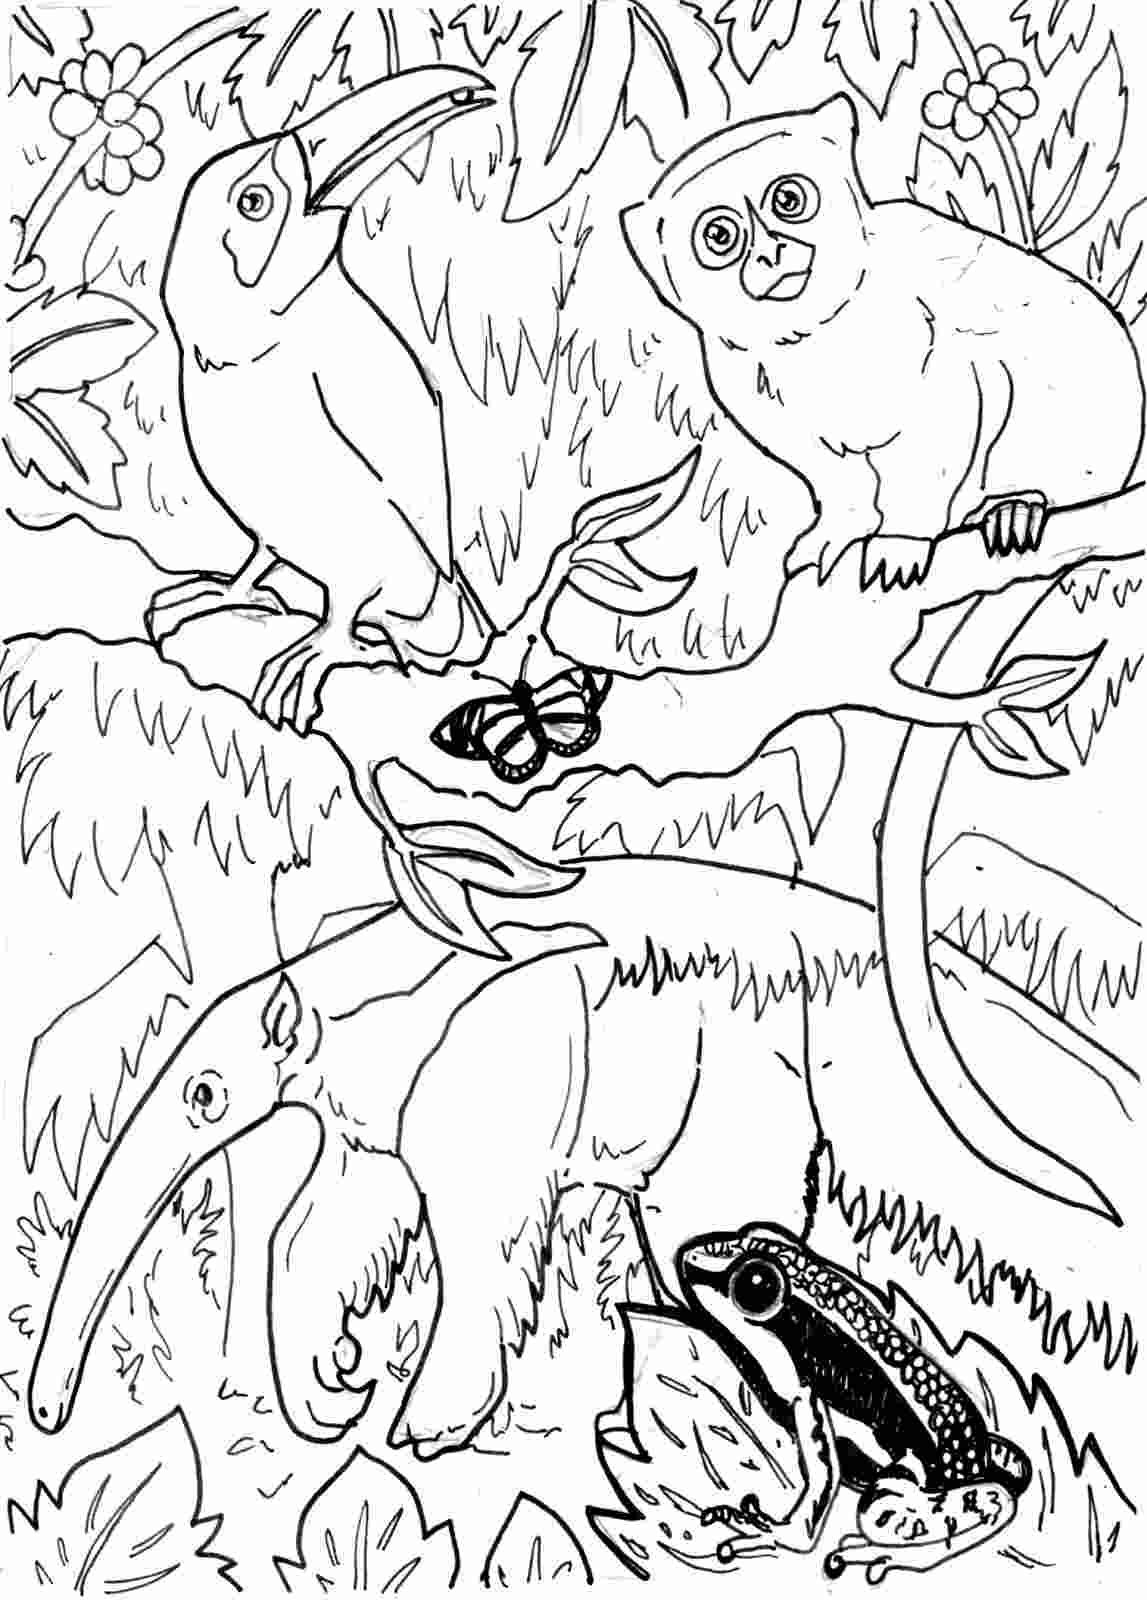 amazon rainforest pictures to print coloring sheets of the amazon rainforest tree coloring amazon to rainforest pictures print